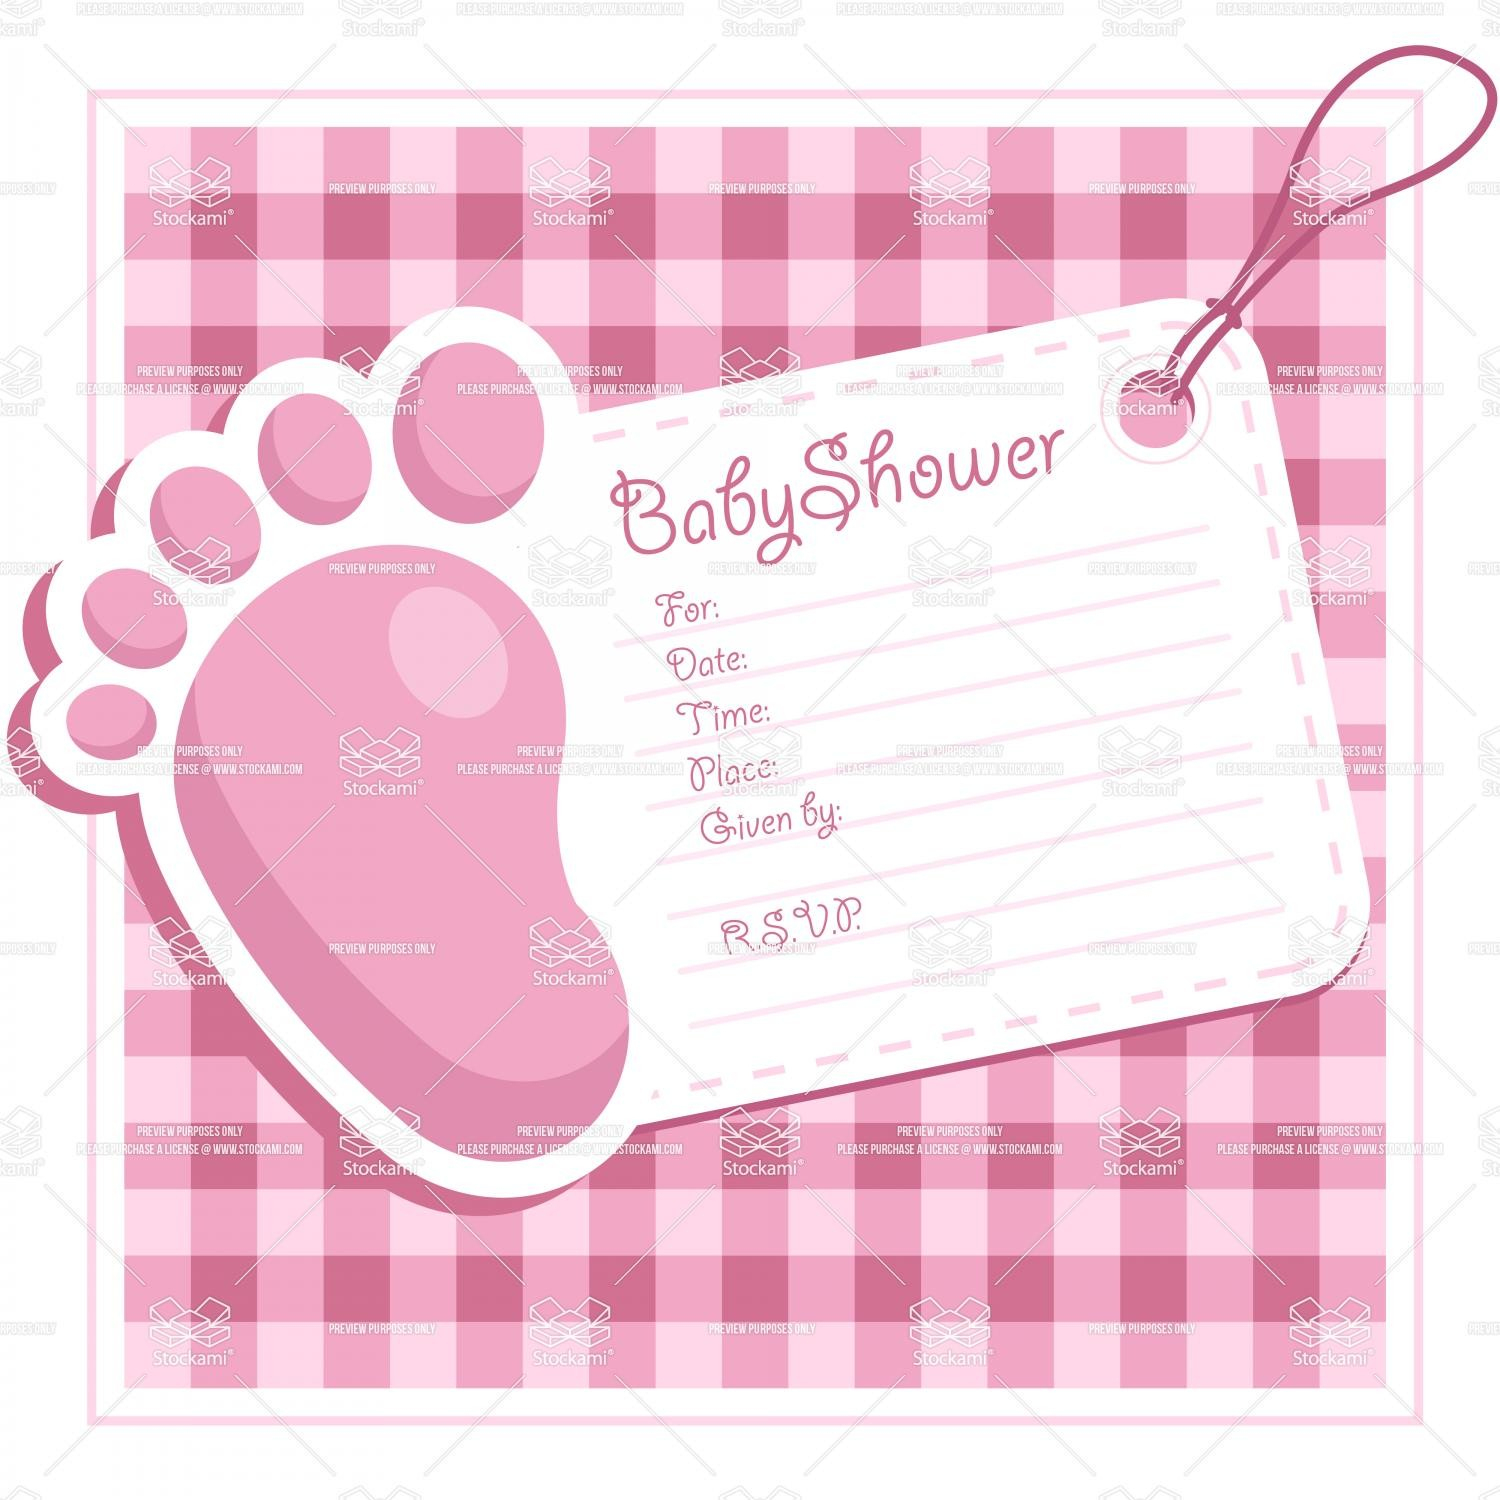 Lovely Free Printable Baby Shower Invitations For Girls Pink And - Free Printable Princess Baby Shower Invitations